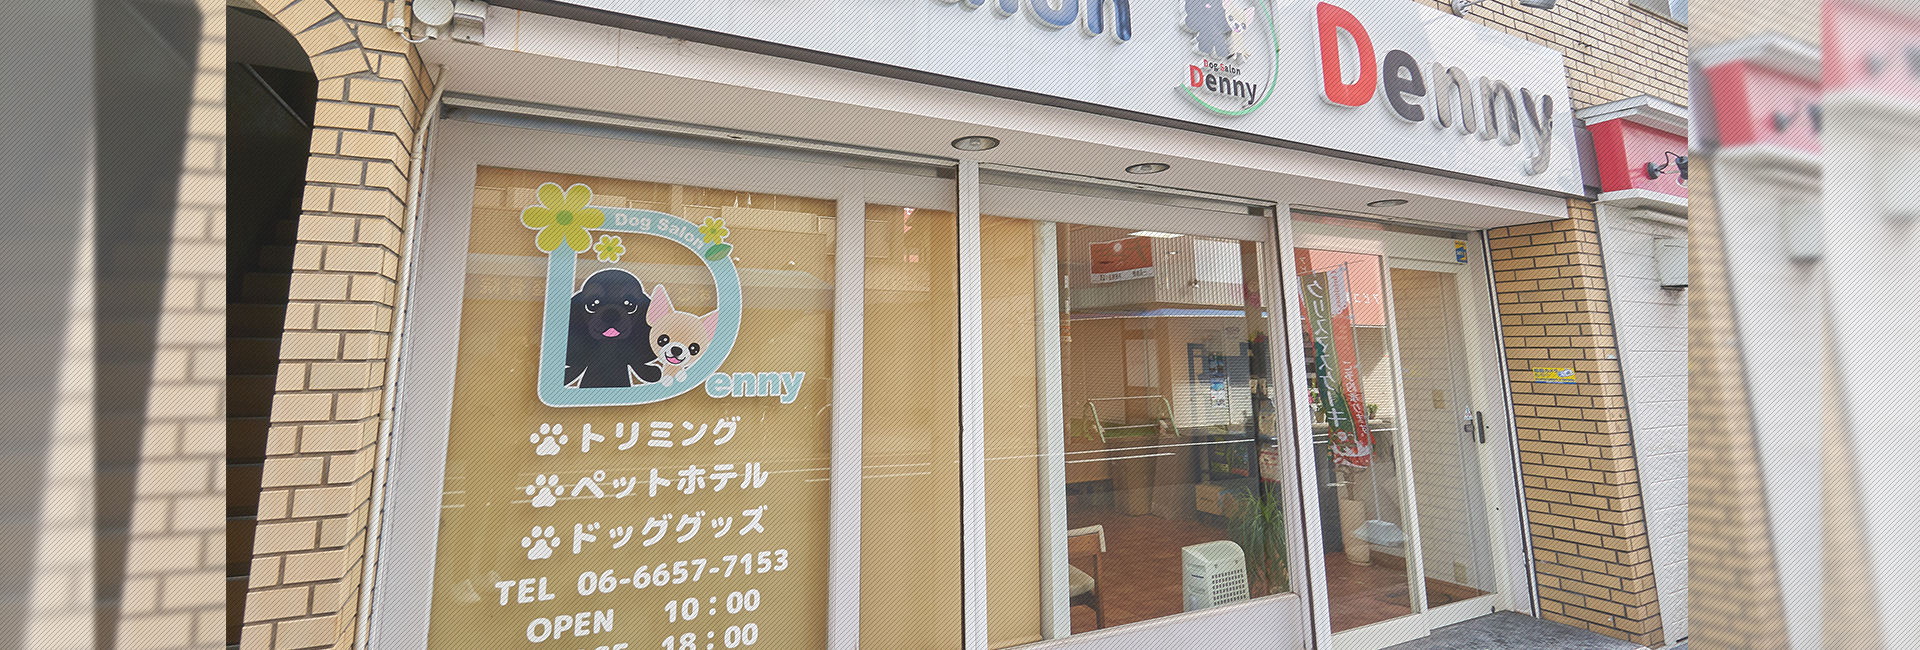 Dog Salon Denny